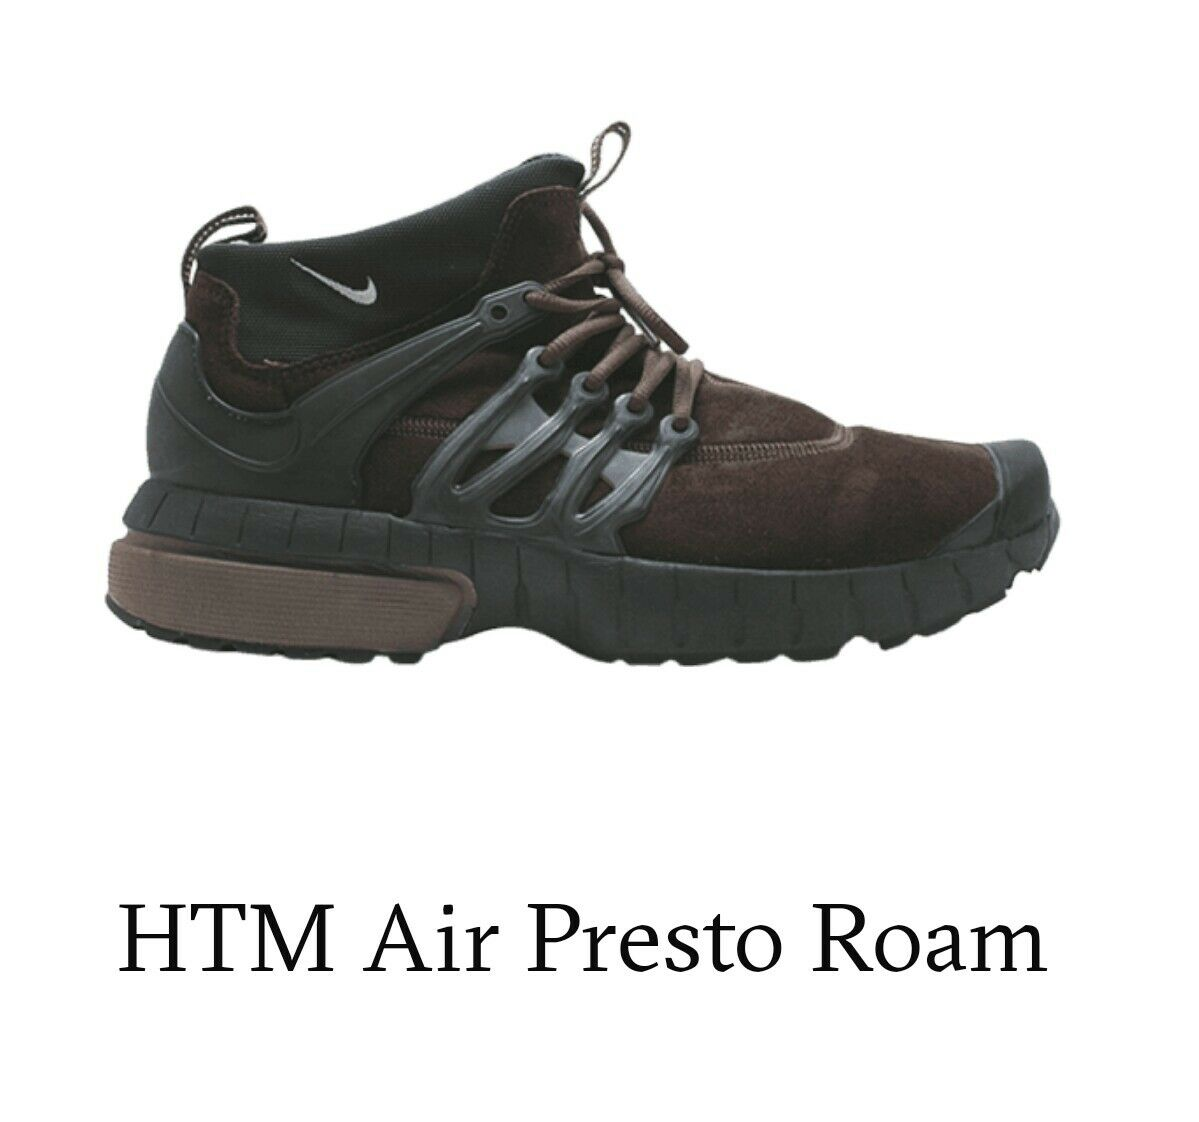 Mens nike htm air presto roam size 10-11 brown, brand new ,limited edition